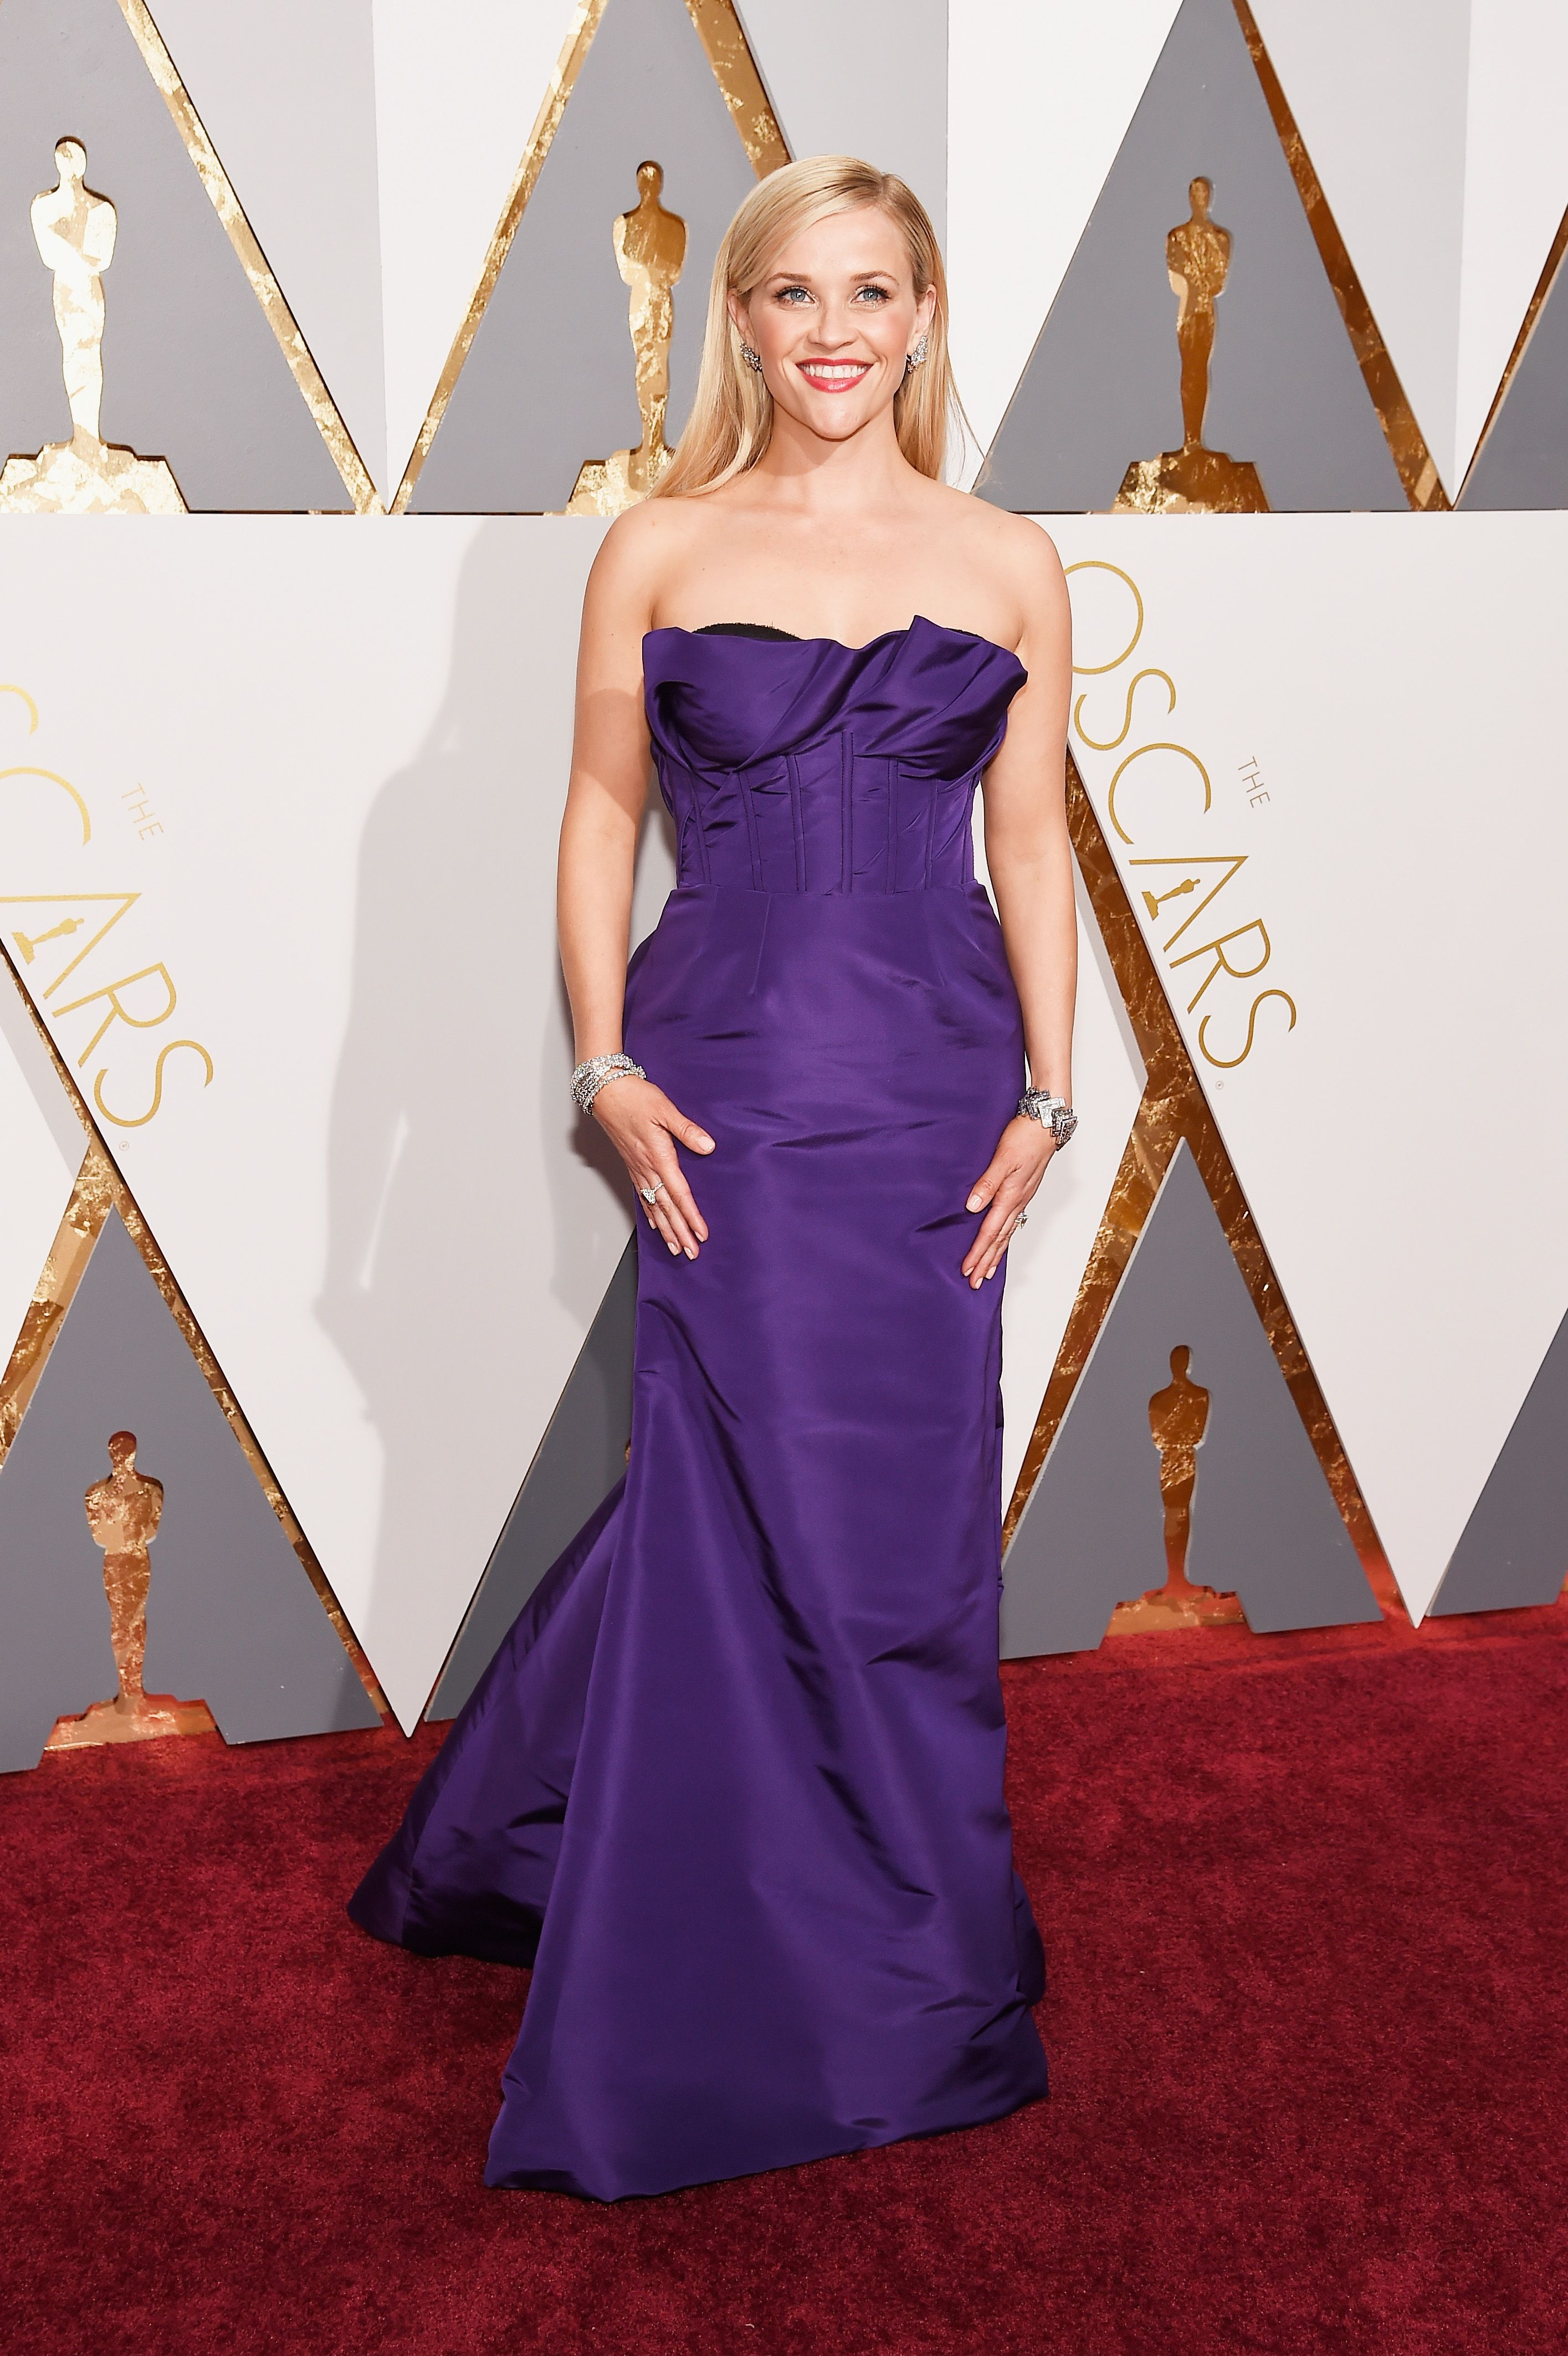 Reese Witherspoon in Purple Oscar de la Renta Dress at the 2016 Oscars